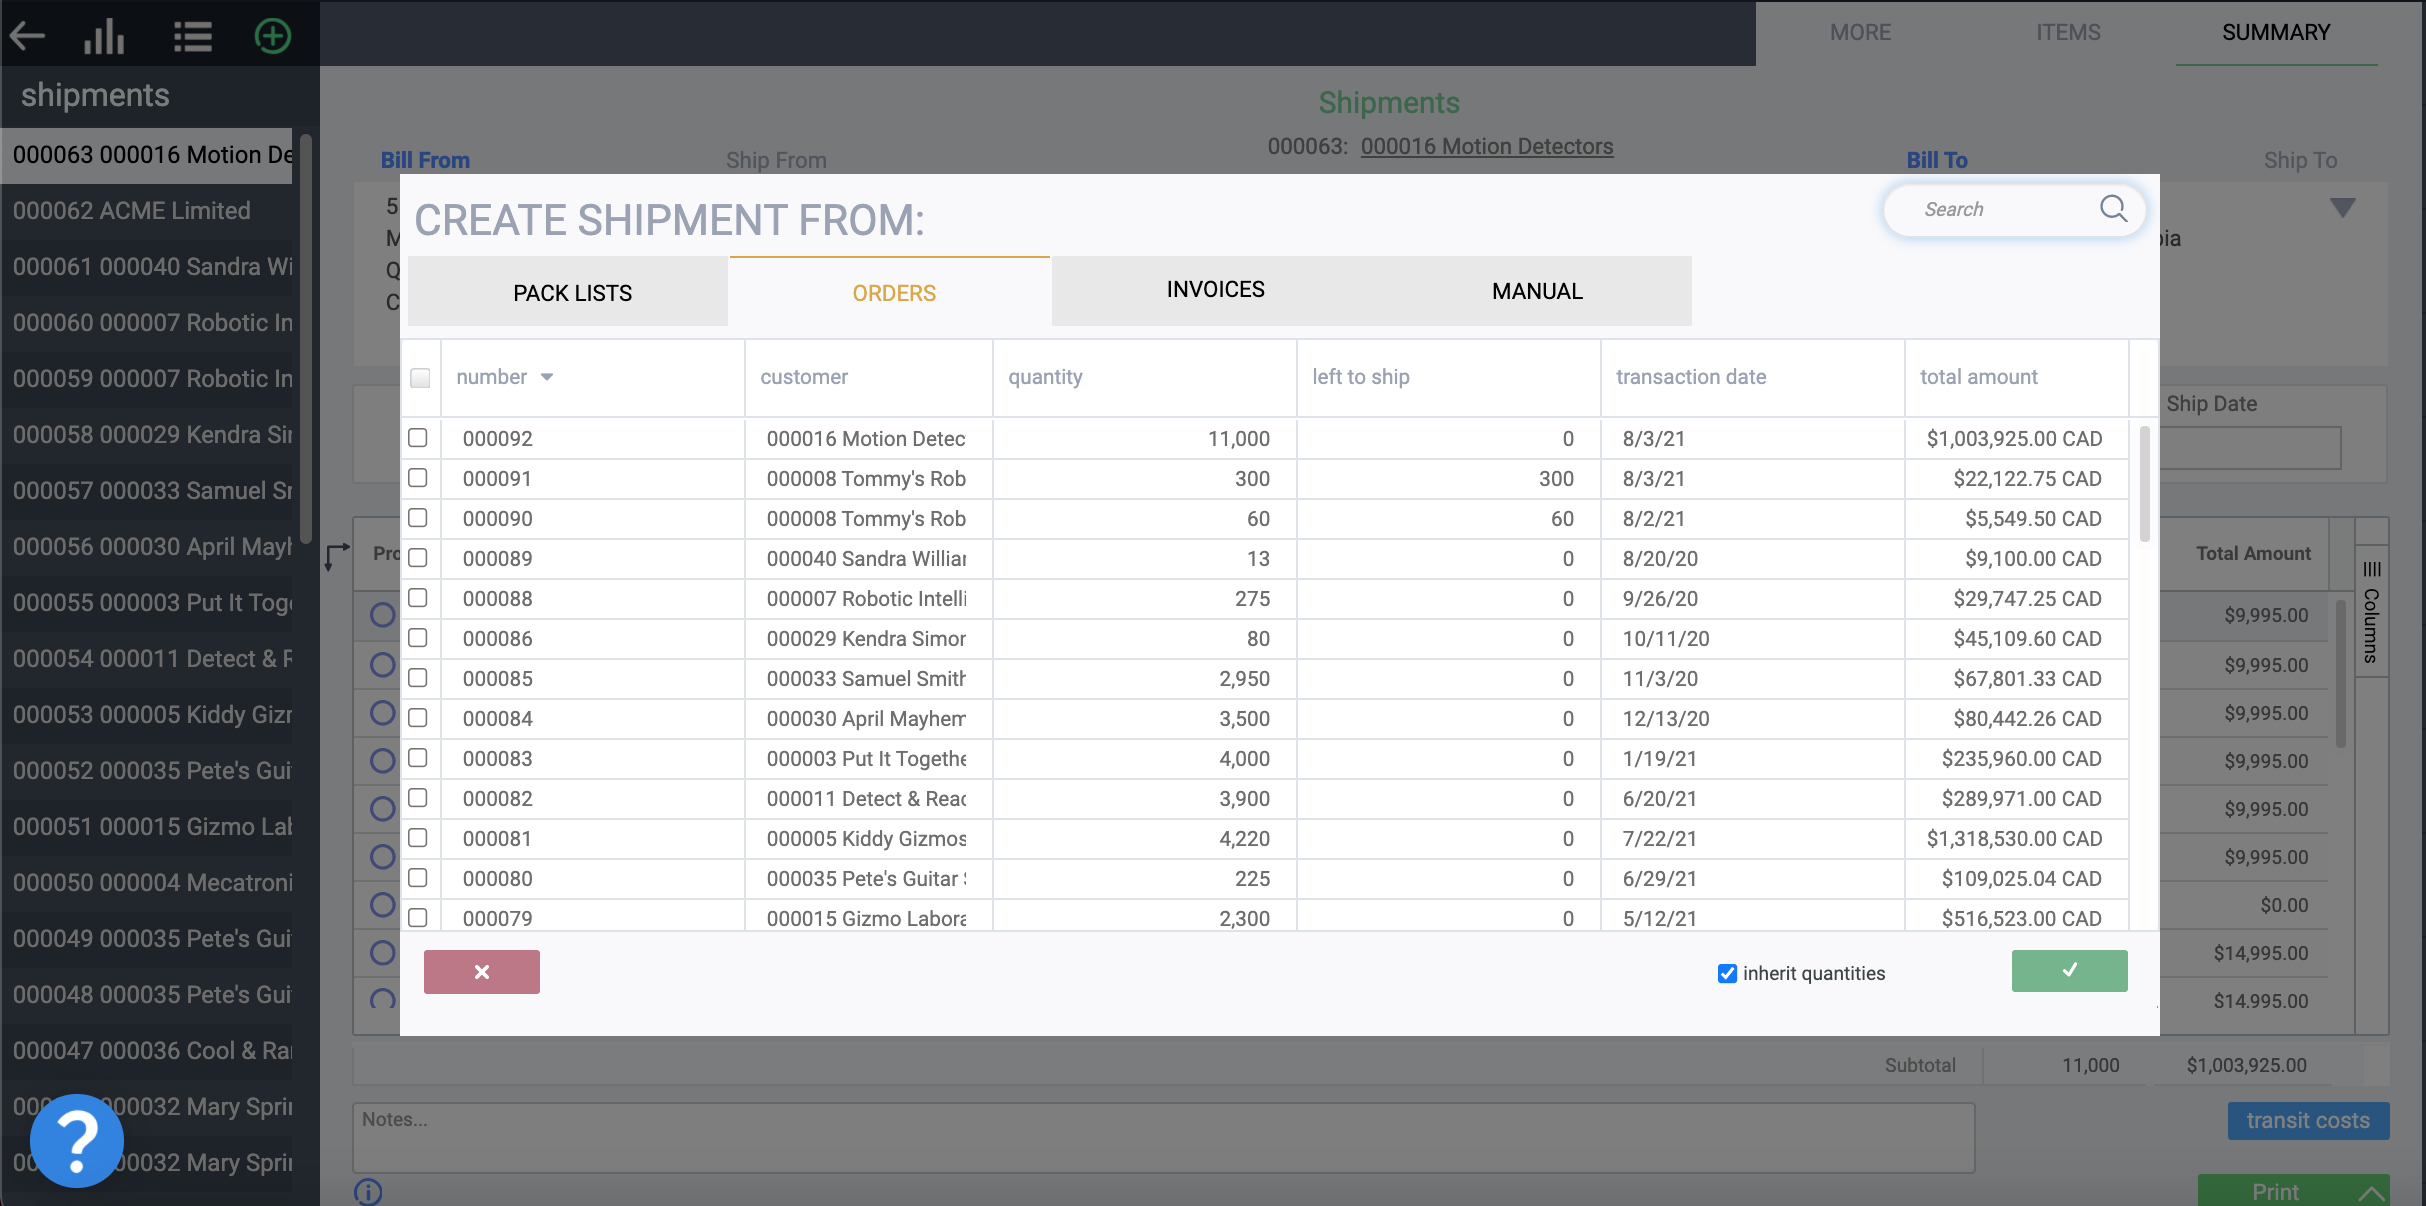 Paragon uses smart workflows that allow users to streamline processes and get rid of time wasting steps.